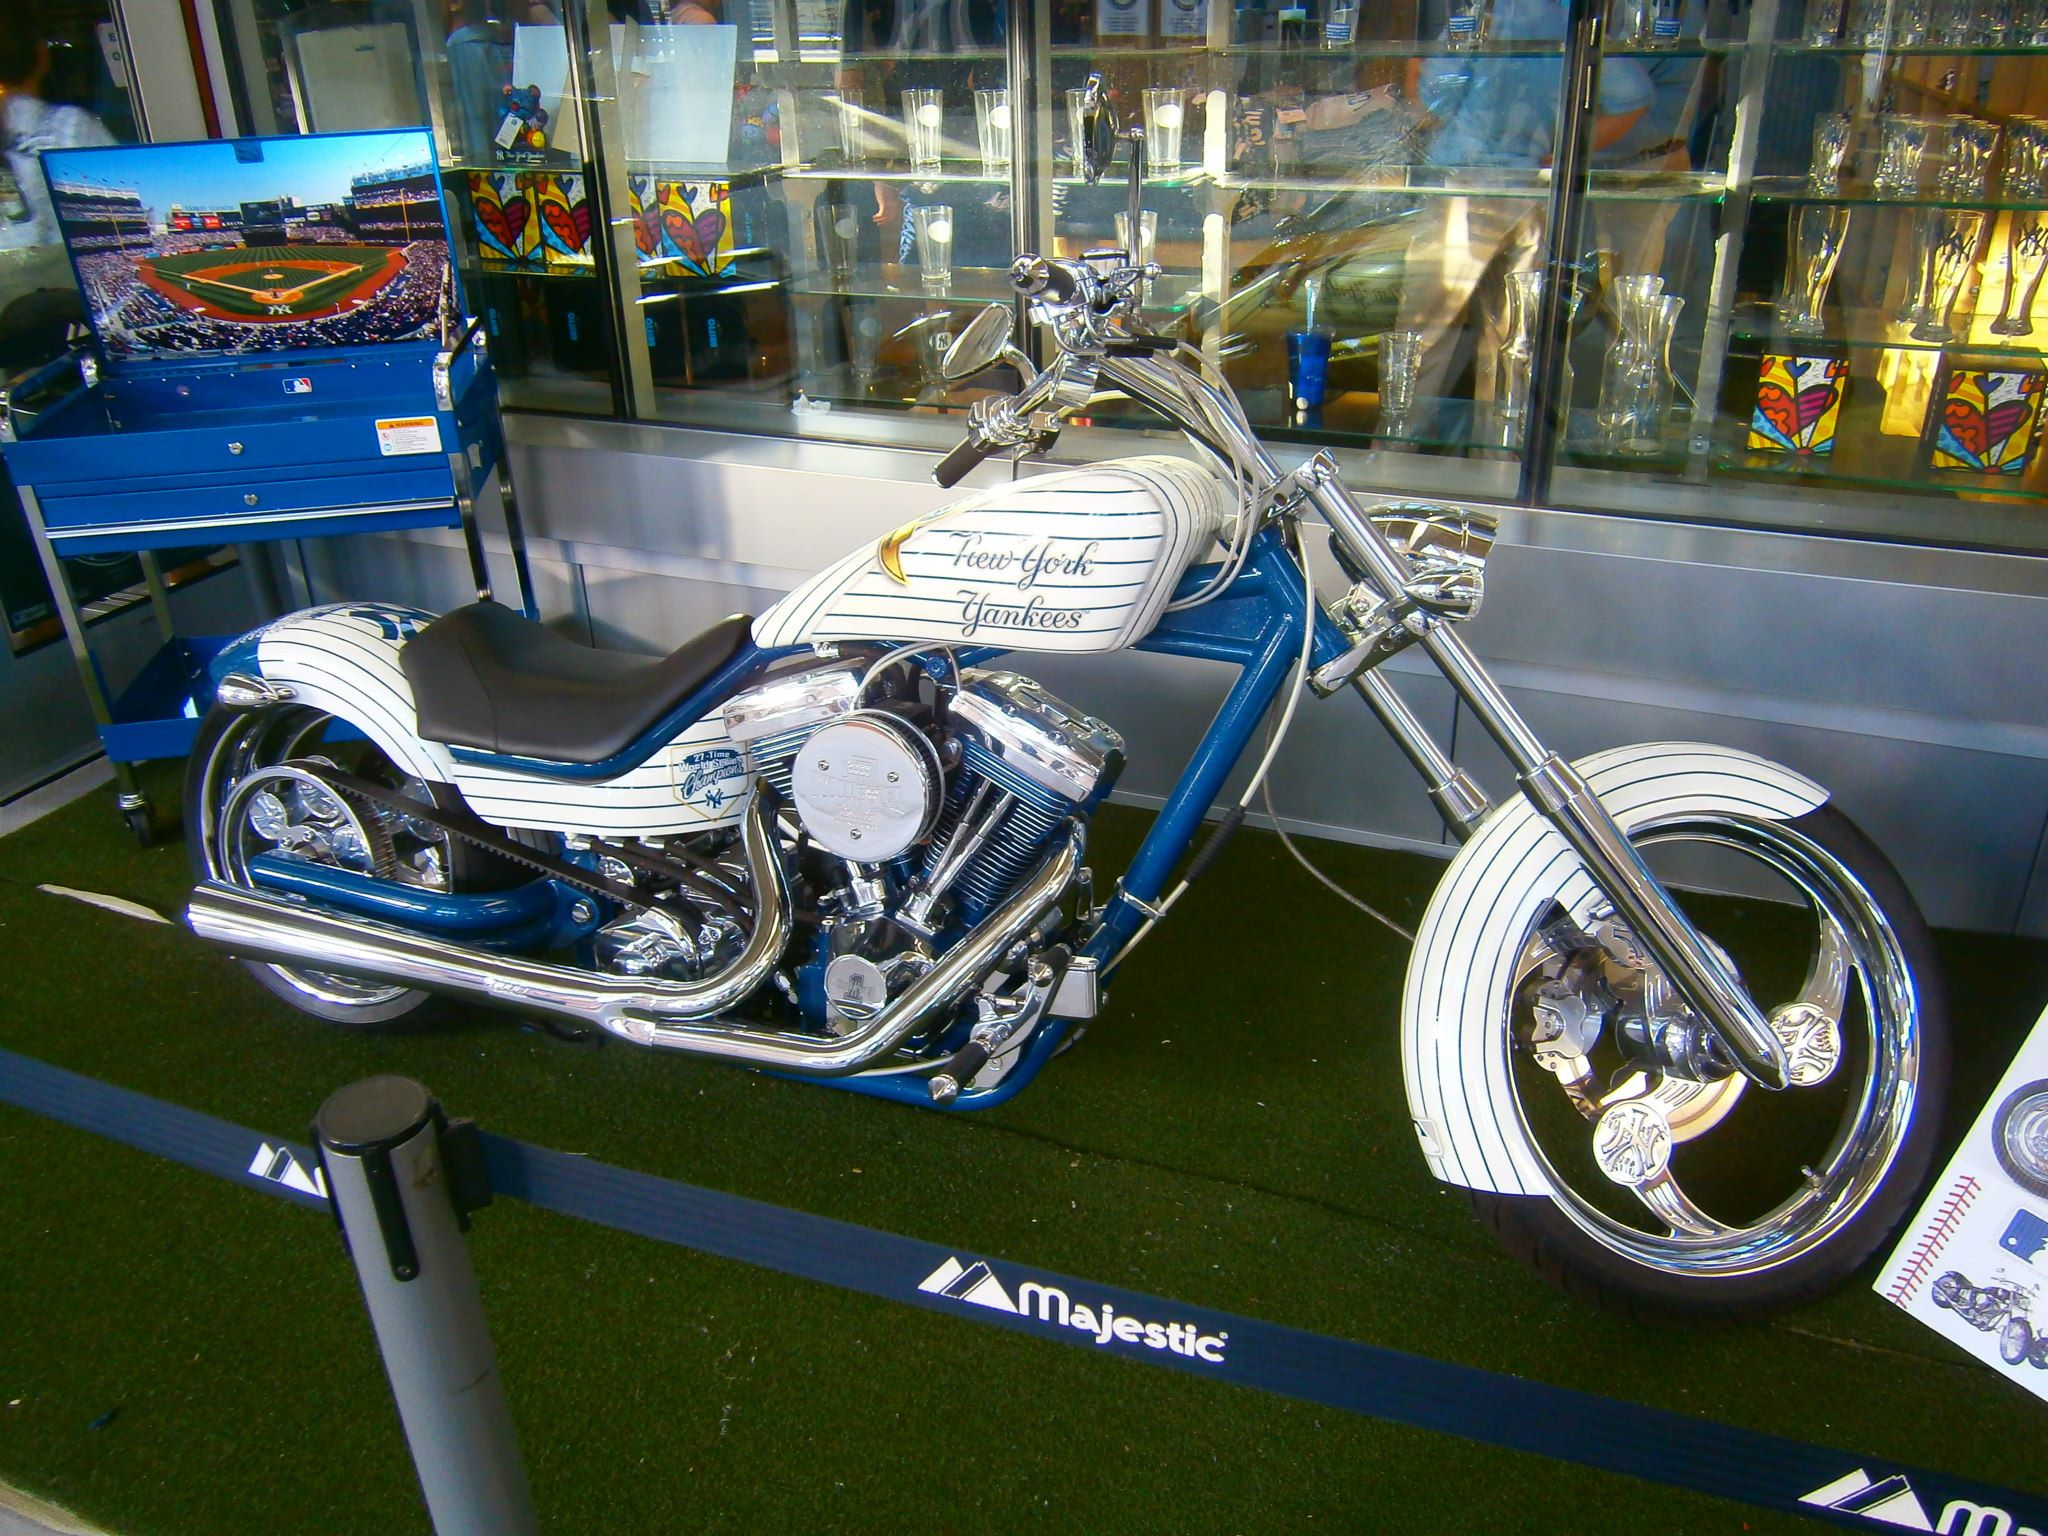 New-York-Yankees-Harley-Davidson